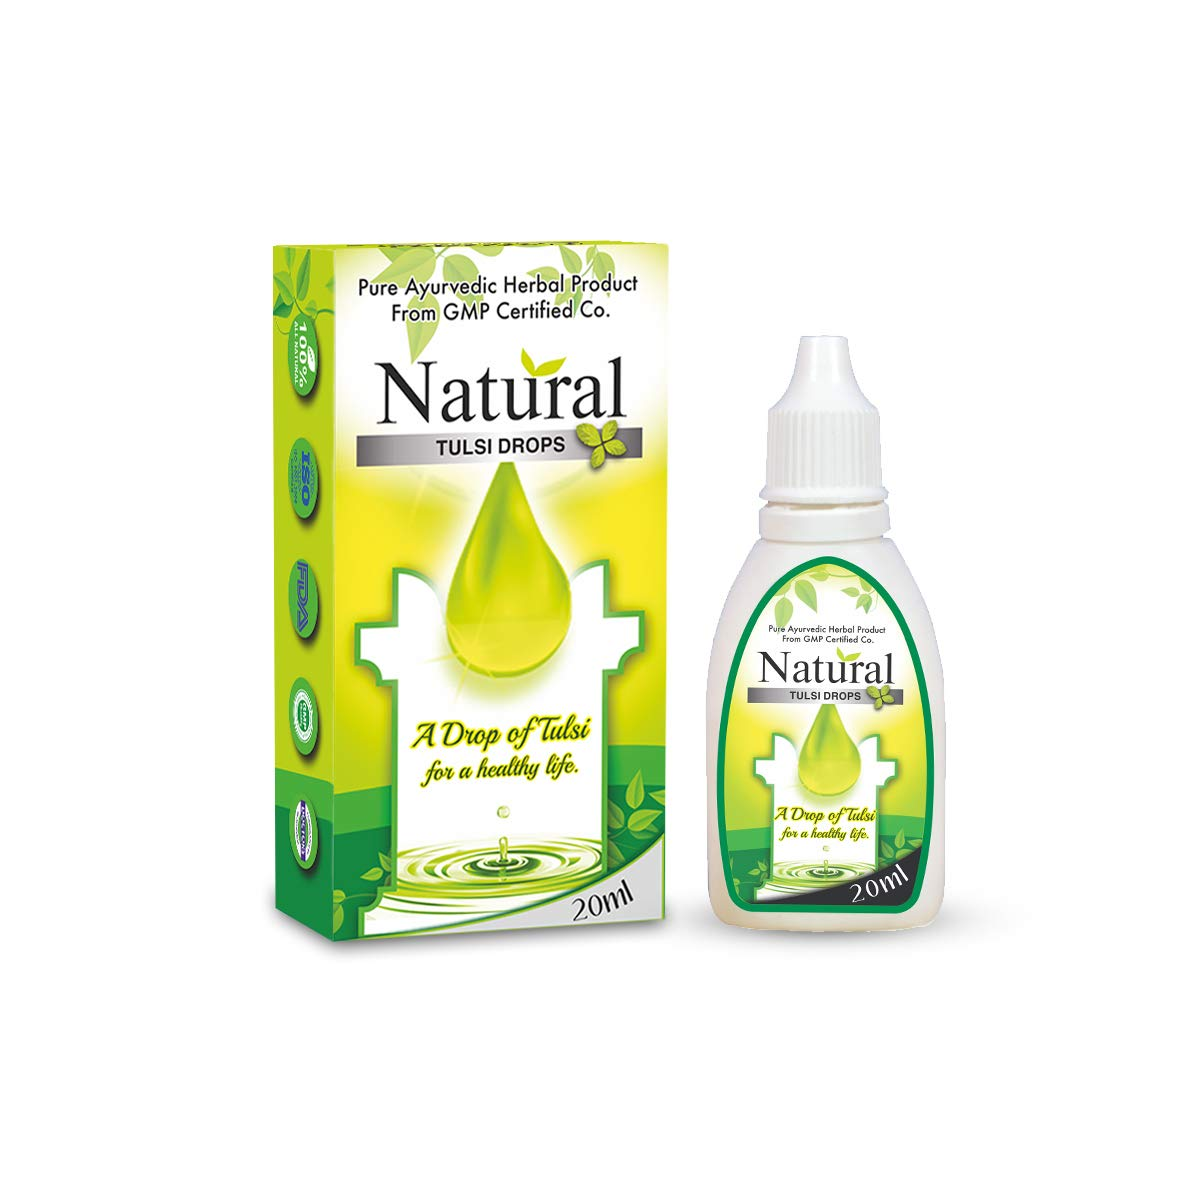 VitaGreen NATURAL TULSI DROPS, Immunity booster, Cough & Cold, Anti-oxidant, 20 ml,(Pack of 1)